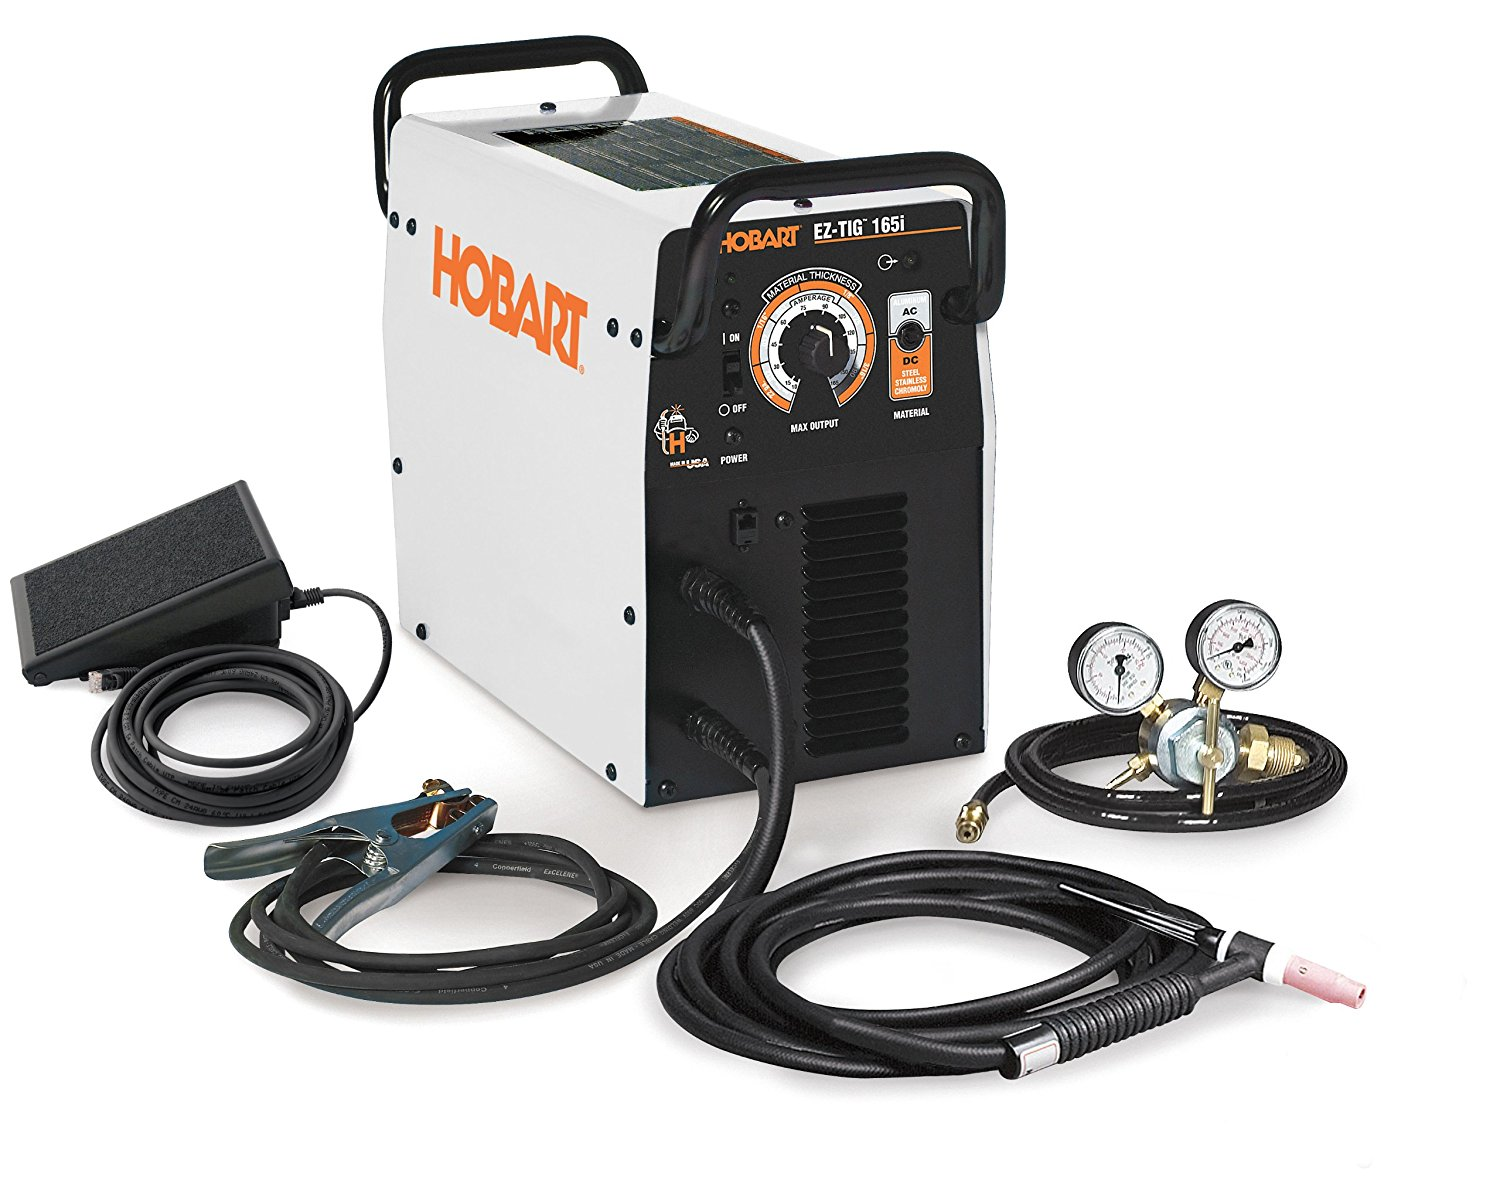 Hobart MIG, TIG & Stick Welders 2018 - The Ultimate Guide and Reviews